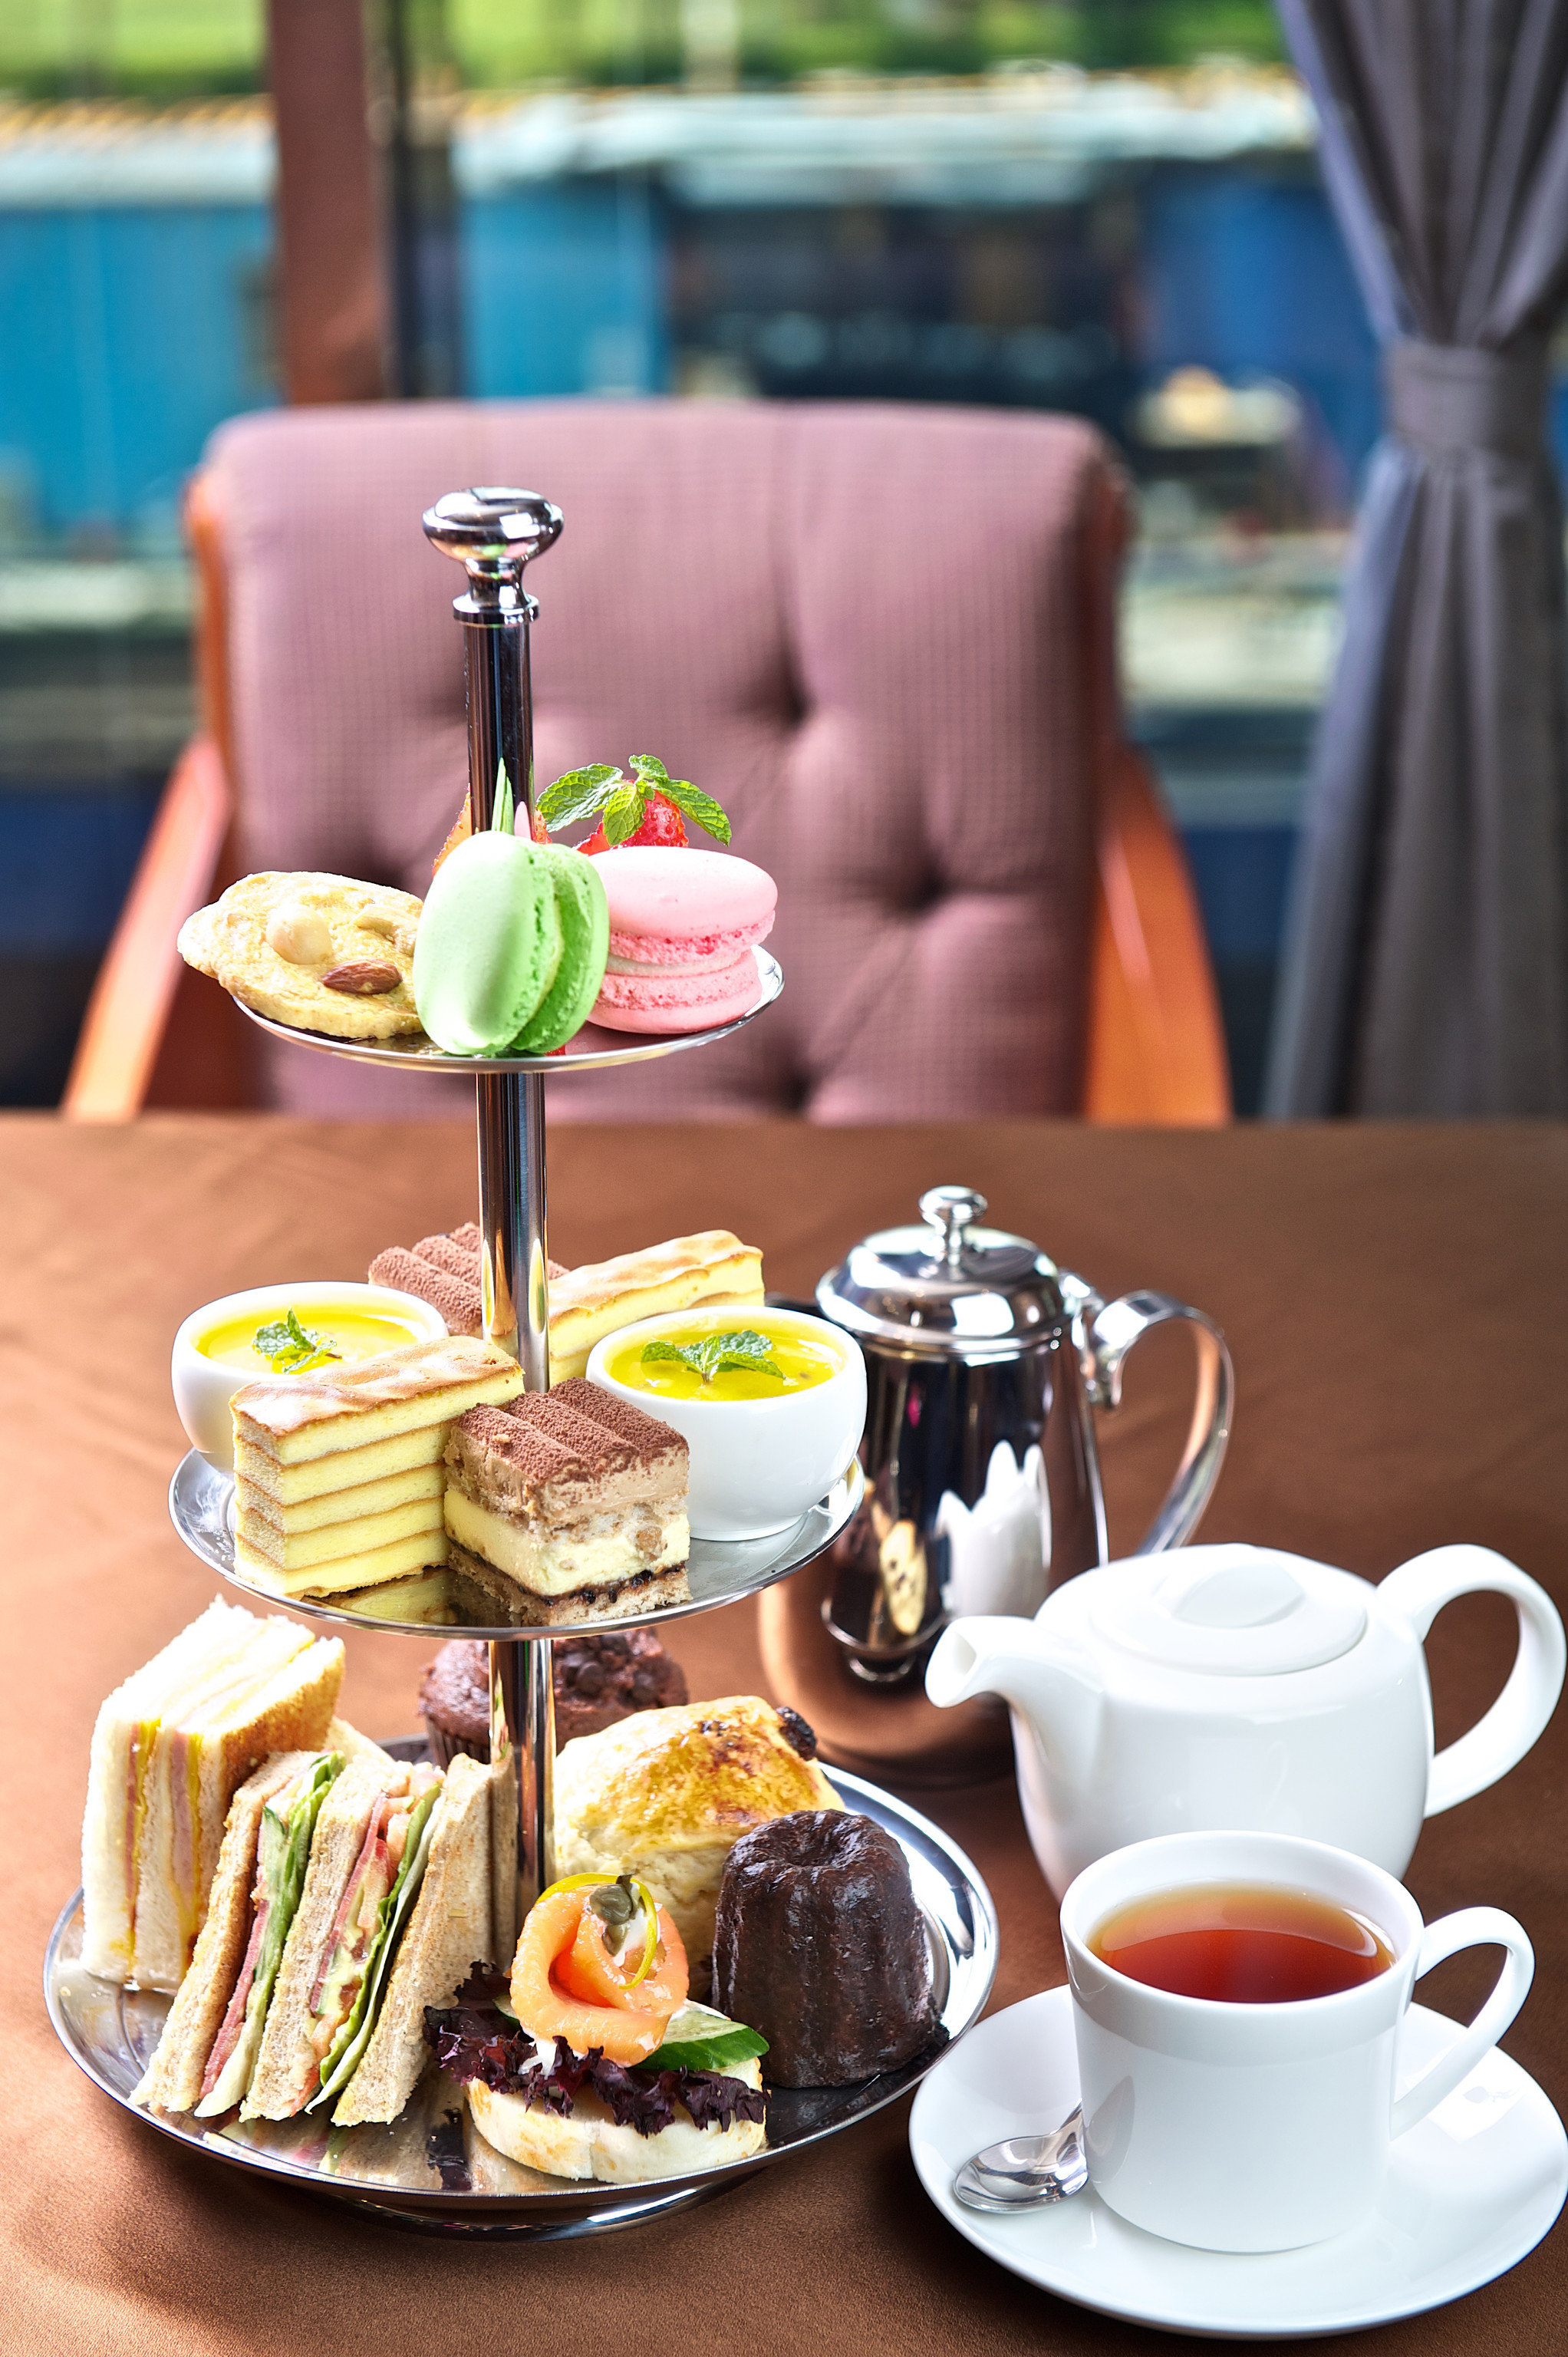 coffee cup plate brunch breakfast lunch food Drink set dining table